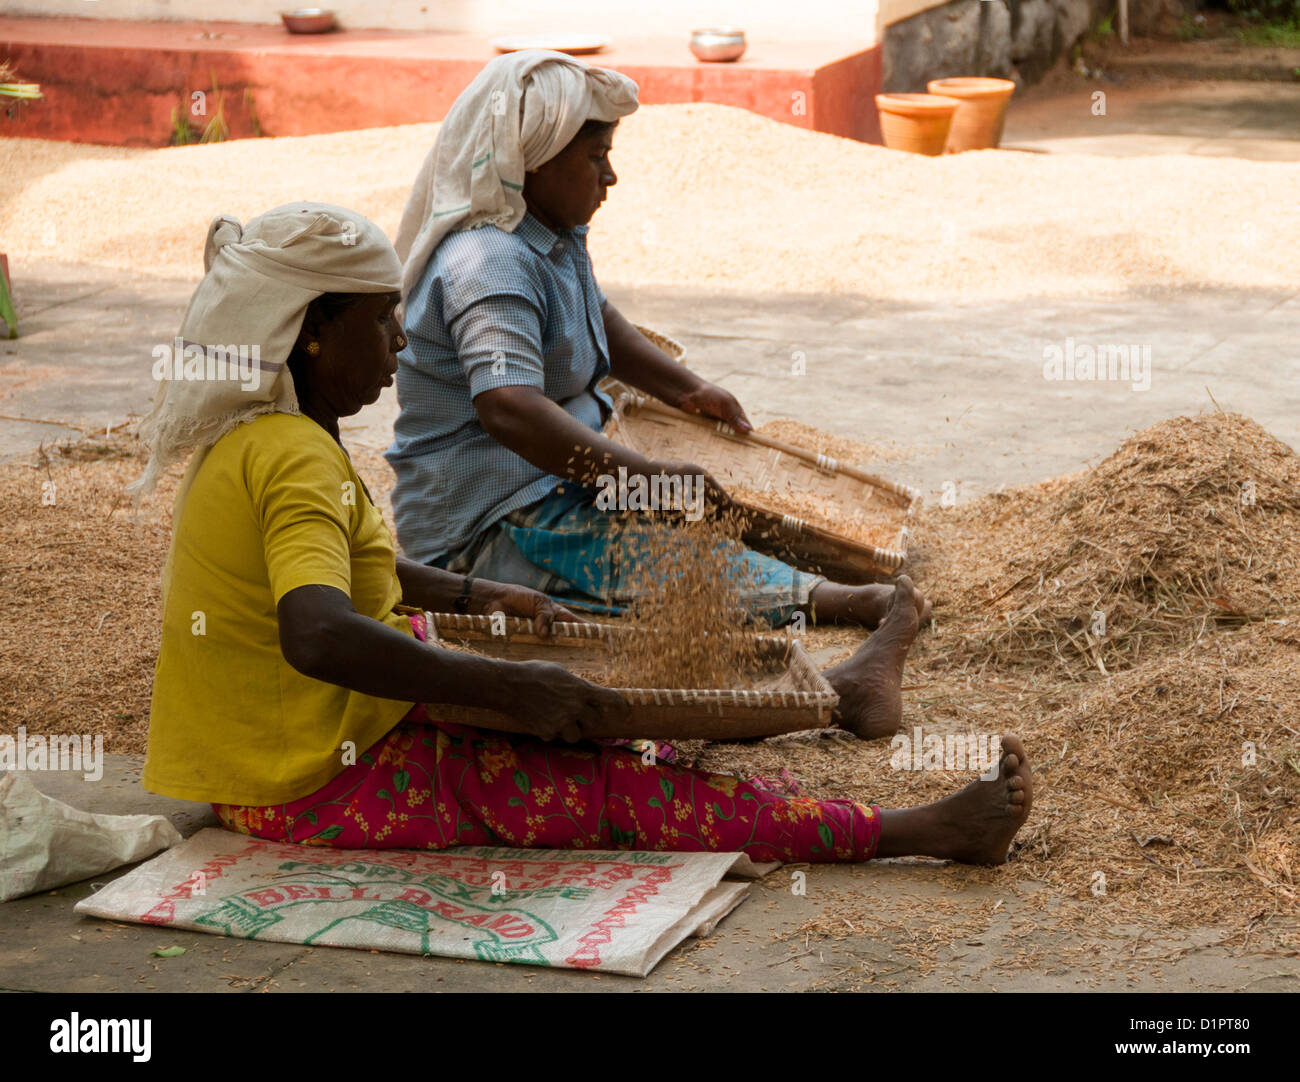 Two women winnowing the chaff - method developed by ancient cultures for separating grain from chaff - Stock Image